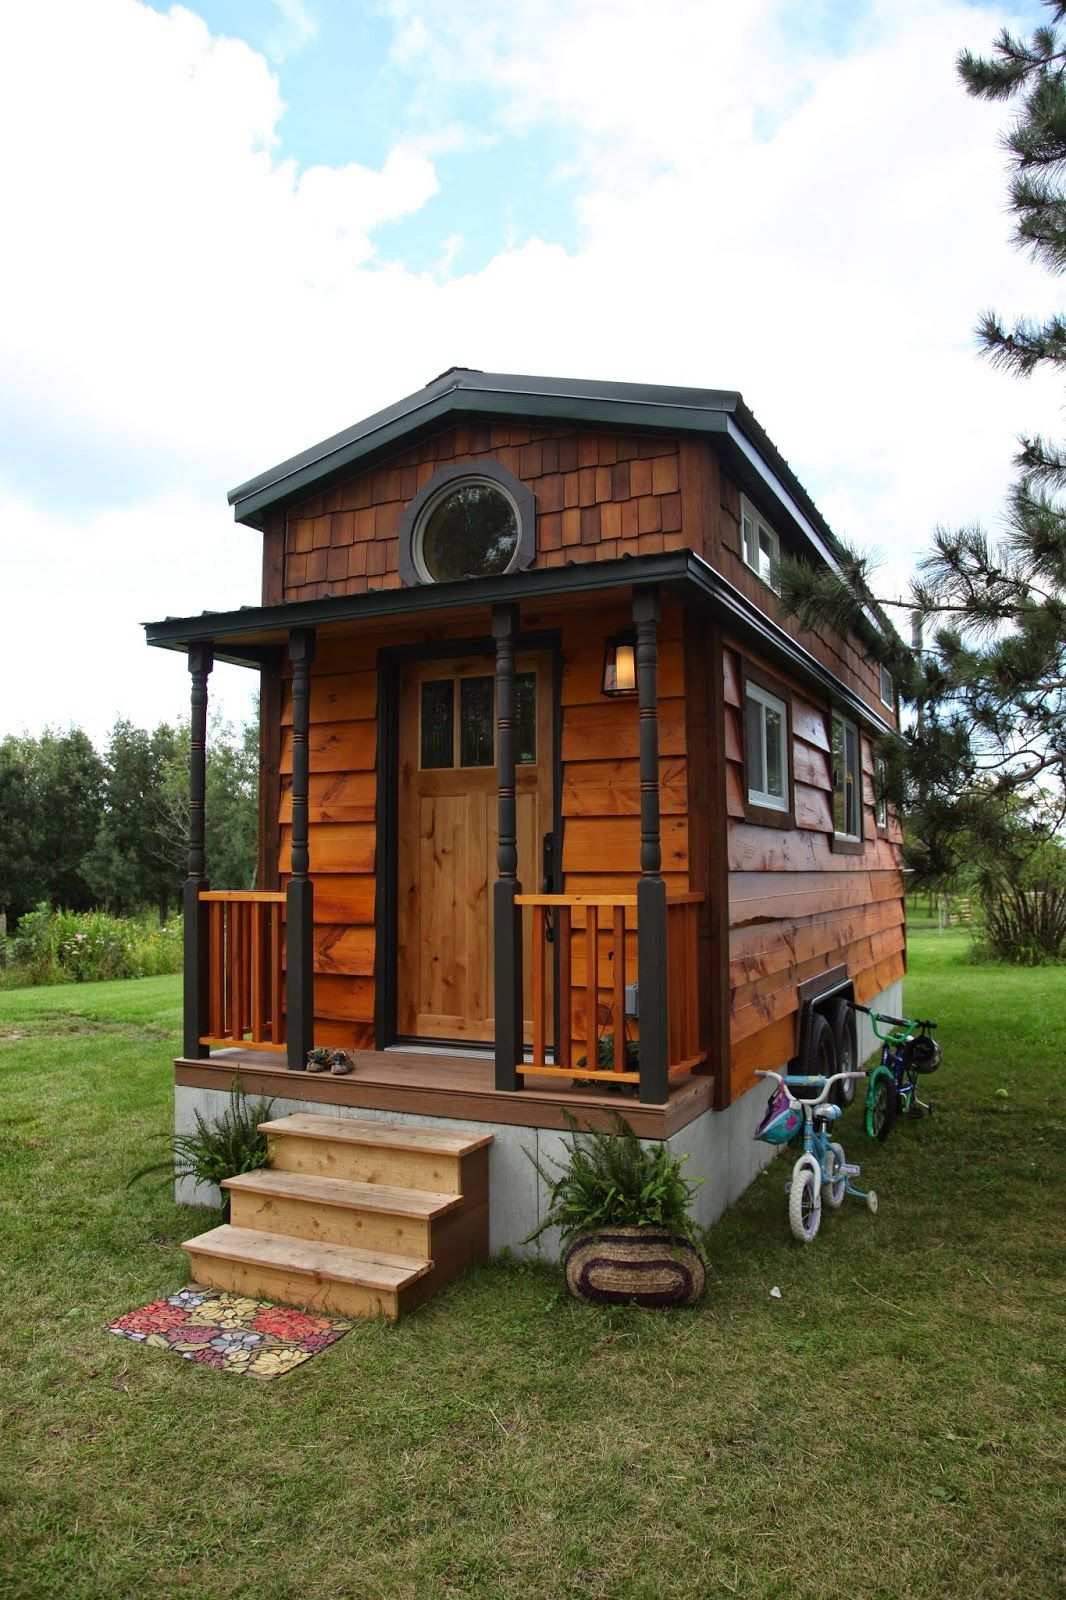 17 1000 images about Tiny House on Pinterest Tiny homes on wheels